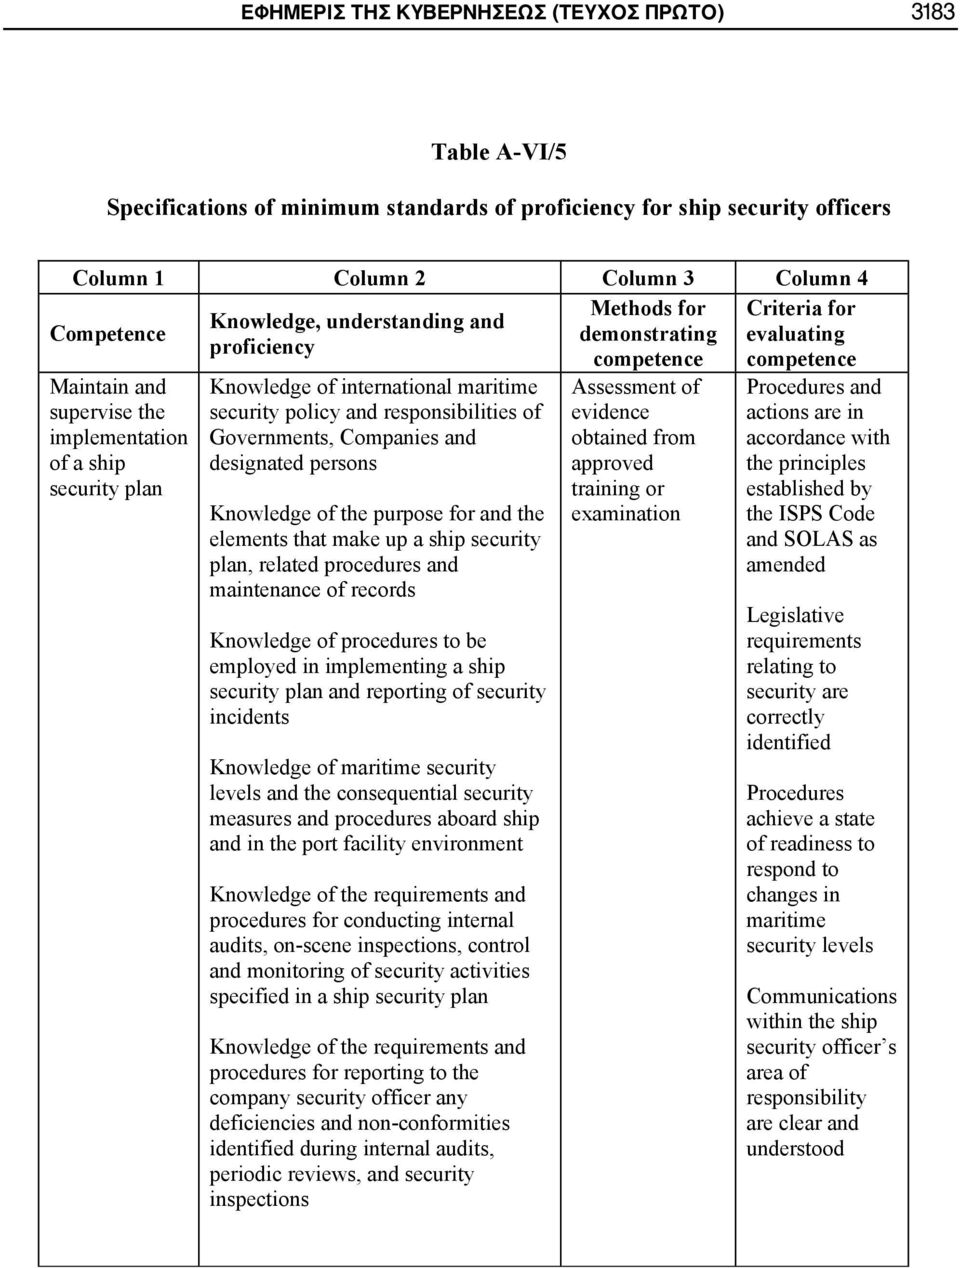 maritime security policy and responsibilities of Governments, Companies and designated persons Knowledge of the purpose for and the elements that make up a ship security plan, related procedures and